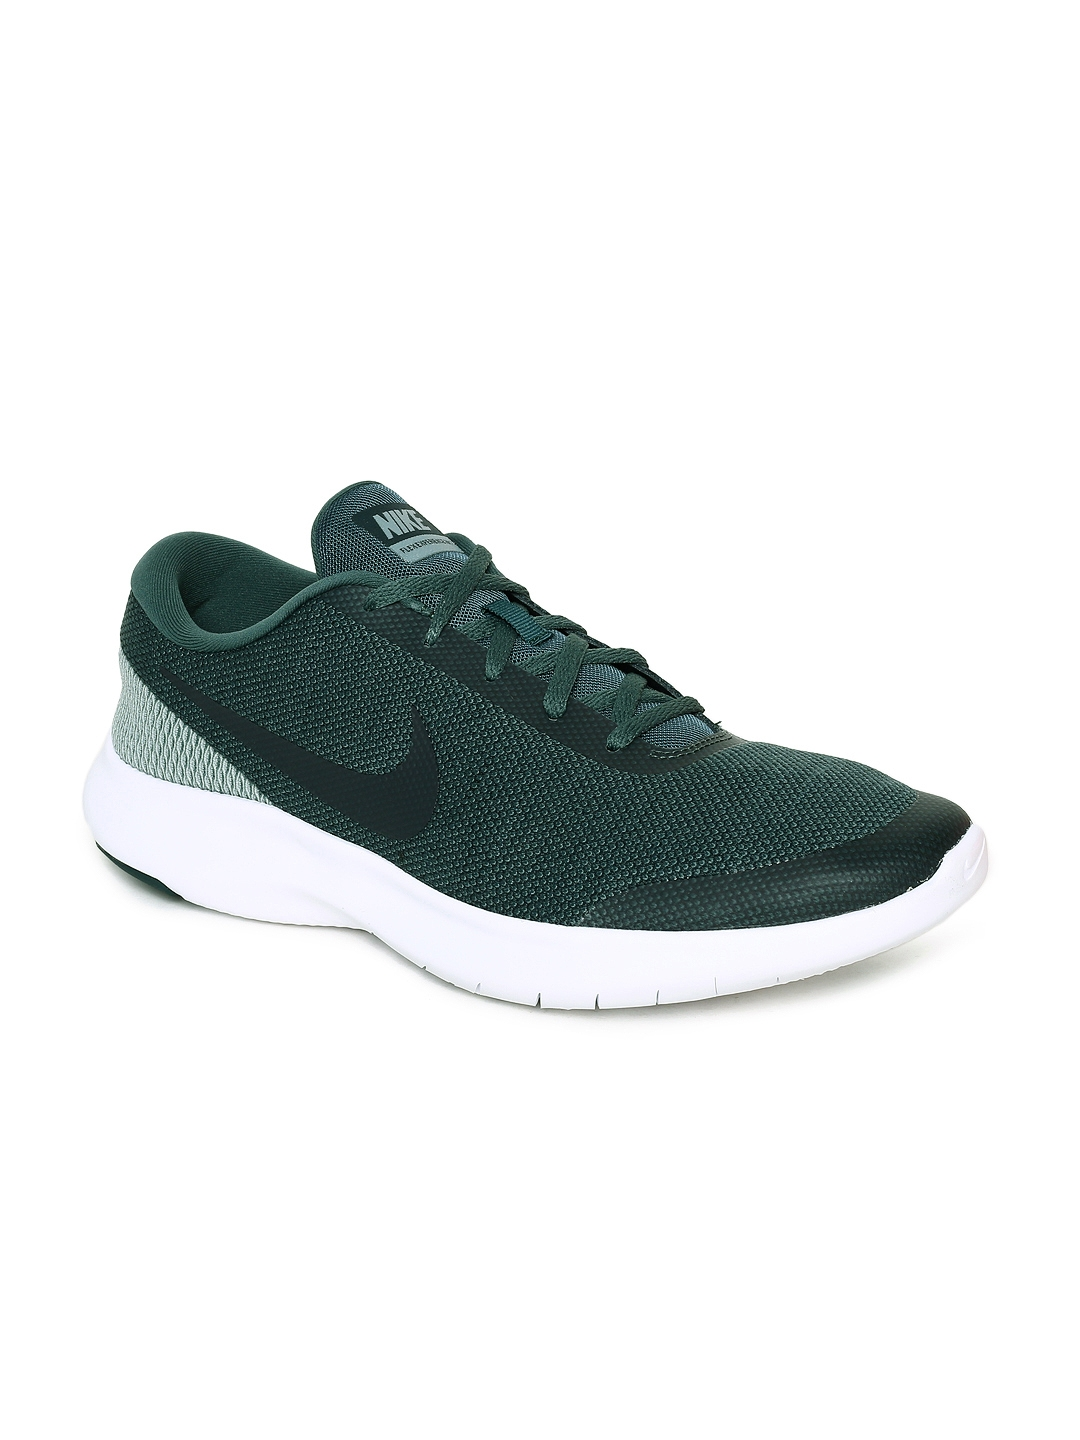 5e1a738fede45 Buy Nike Men FLEX EXPERIENCE RN 7 Green Running Shoes - Sports Shoes ...